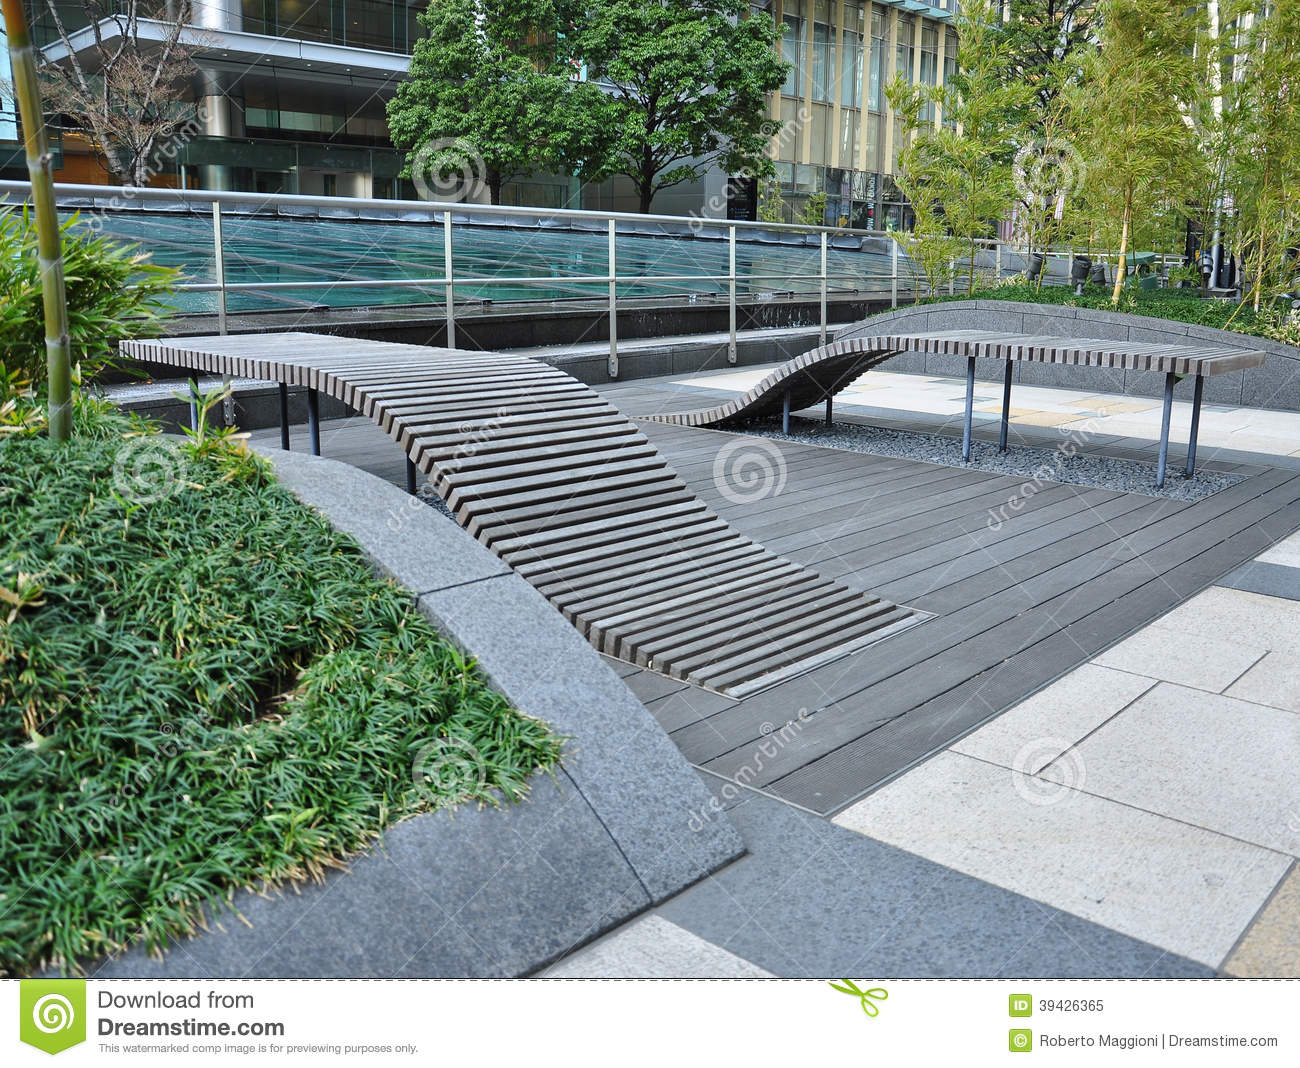 Public Urban Space Design In Central Tokyo, Japan Stock Photo - Image ...